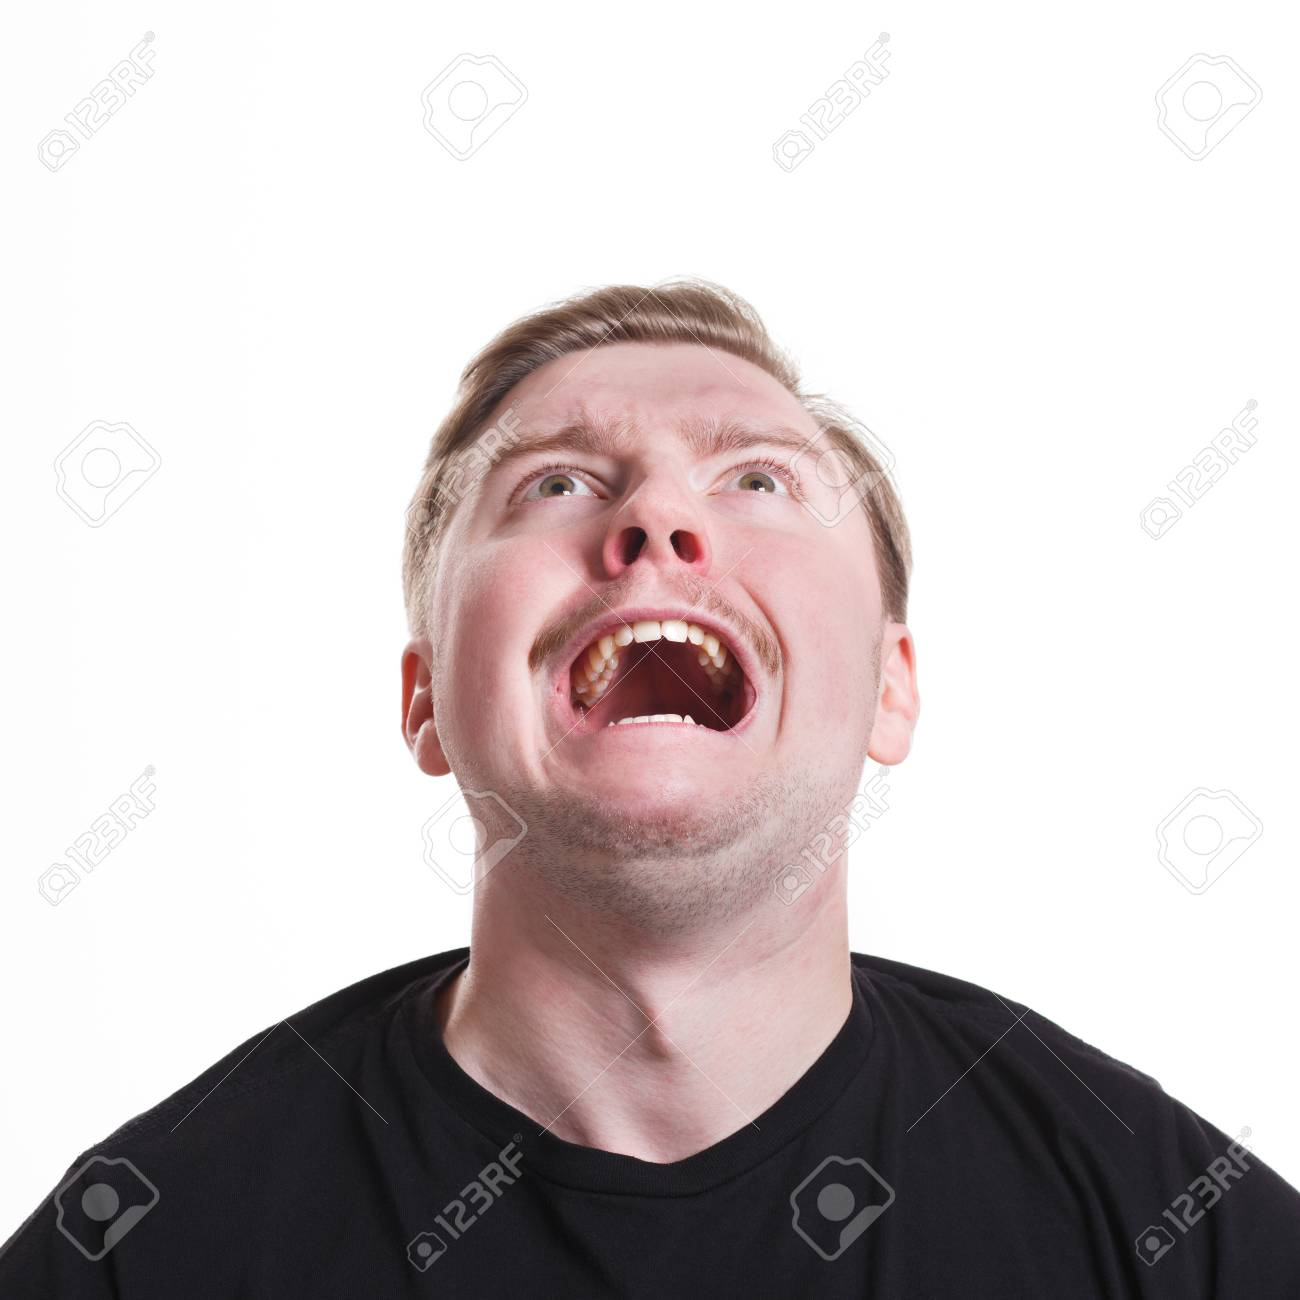 Facial Negative Expressions Shouting Desperate Man Looking Up Stock Photo Picture And Royalty Free Image Image 76739018 Boo boo boo boo boo boo, boo boo boo boo boo boo boo, boo boo boo boo boo boo boo boo. 123rf com